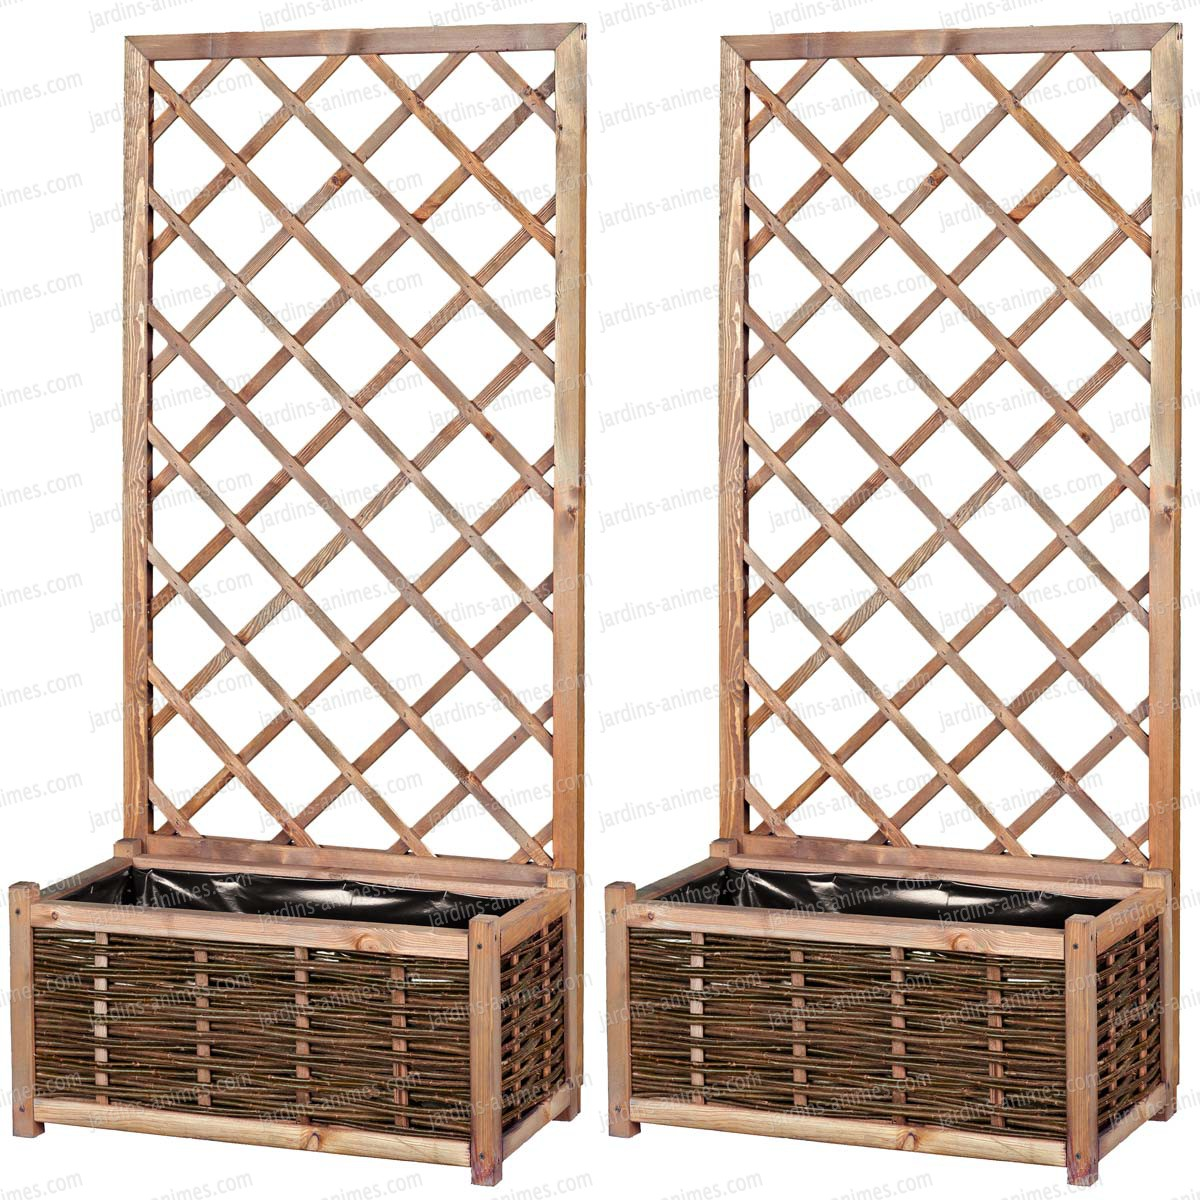 lot de 2 bac jardiniere et treillis en pin fsc mobilier. Black Bedroom Furniture Sets. Home Design Ideas